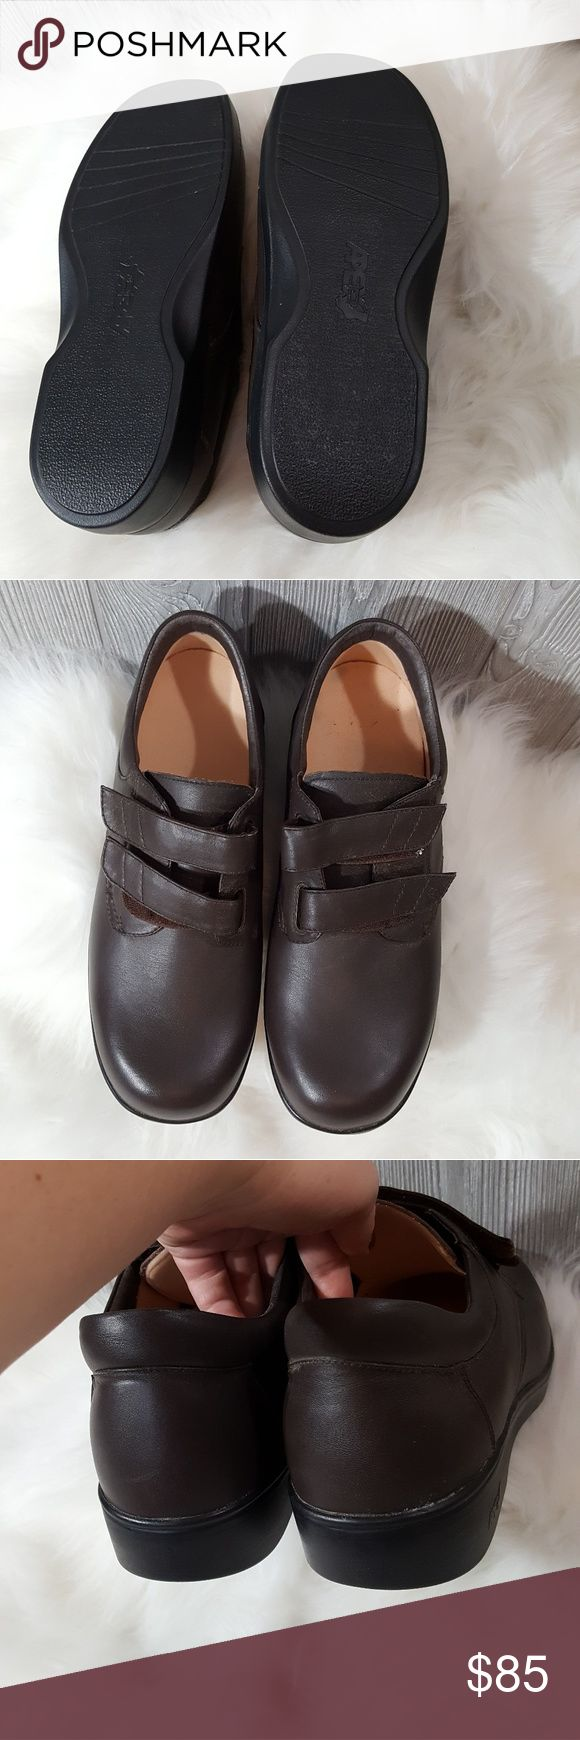 11m brown mens orthopedic velcro shoes These are sharp for orthopedic shoes! They really are nice. I got them for my dad but due to his prosthetic leg he wasn't able to wear them so they are brand-new in perfect condition has 11 M came from orthopedic doctor apex Shoes